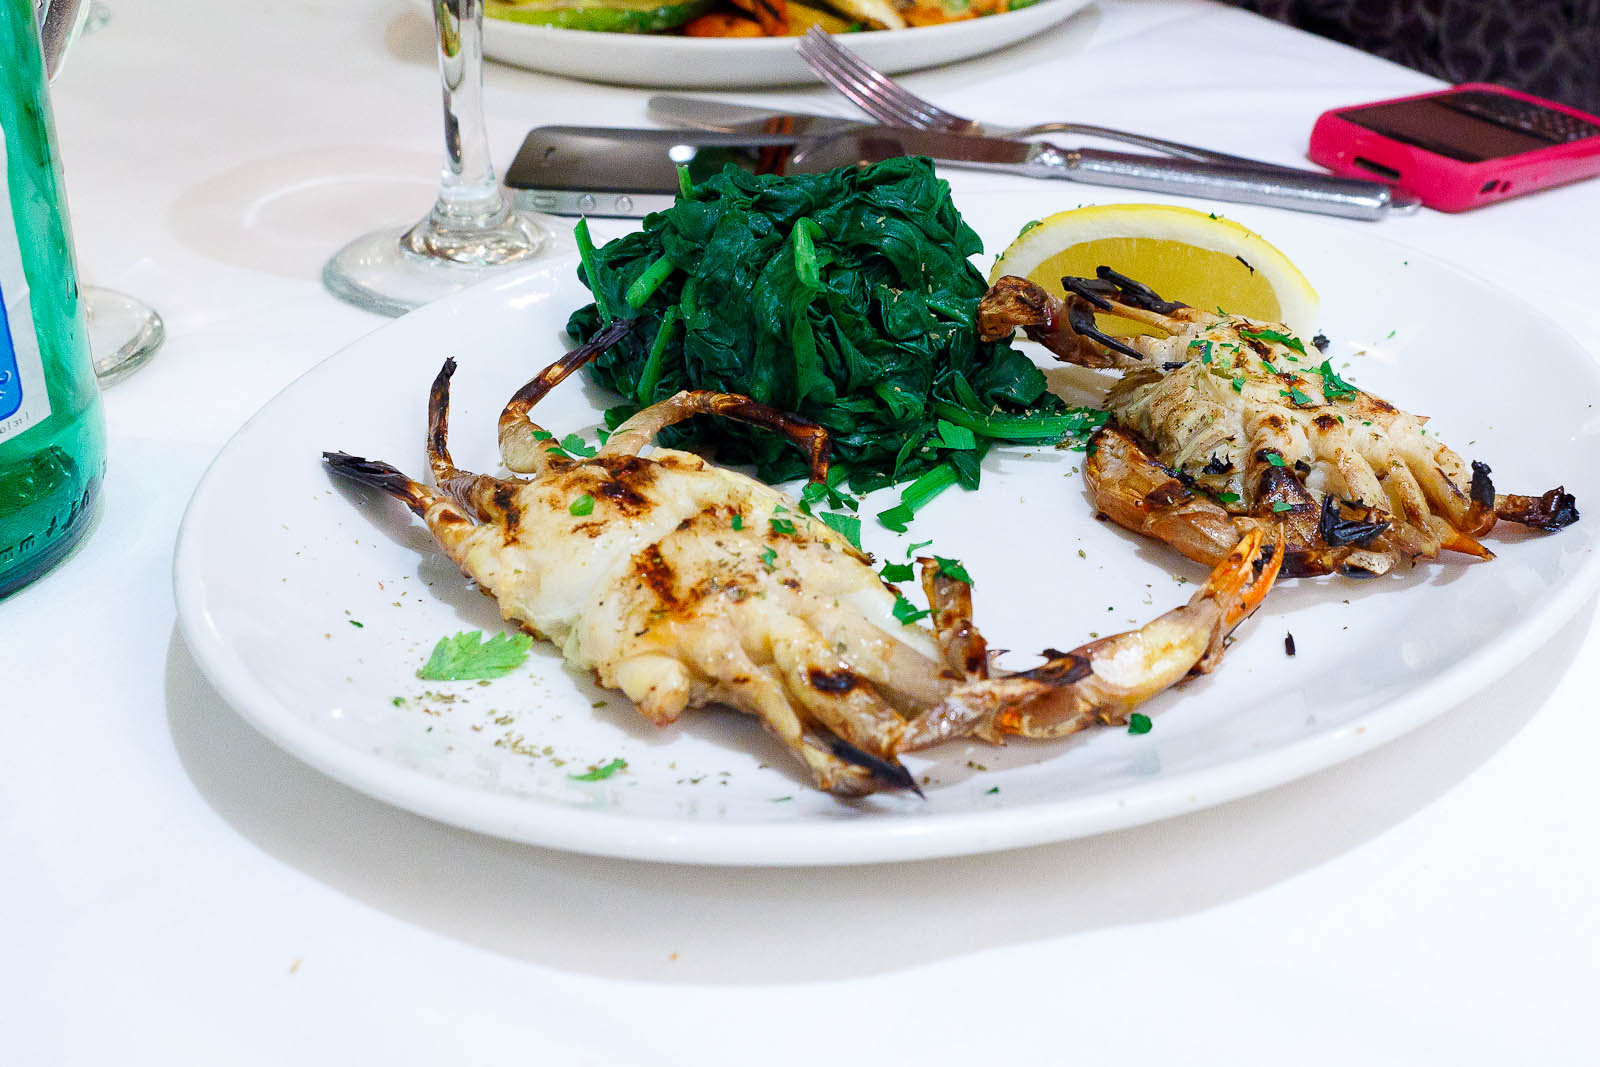 Grilled soft shell crab with steamed spinach